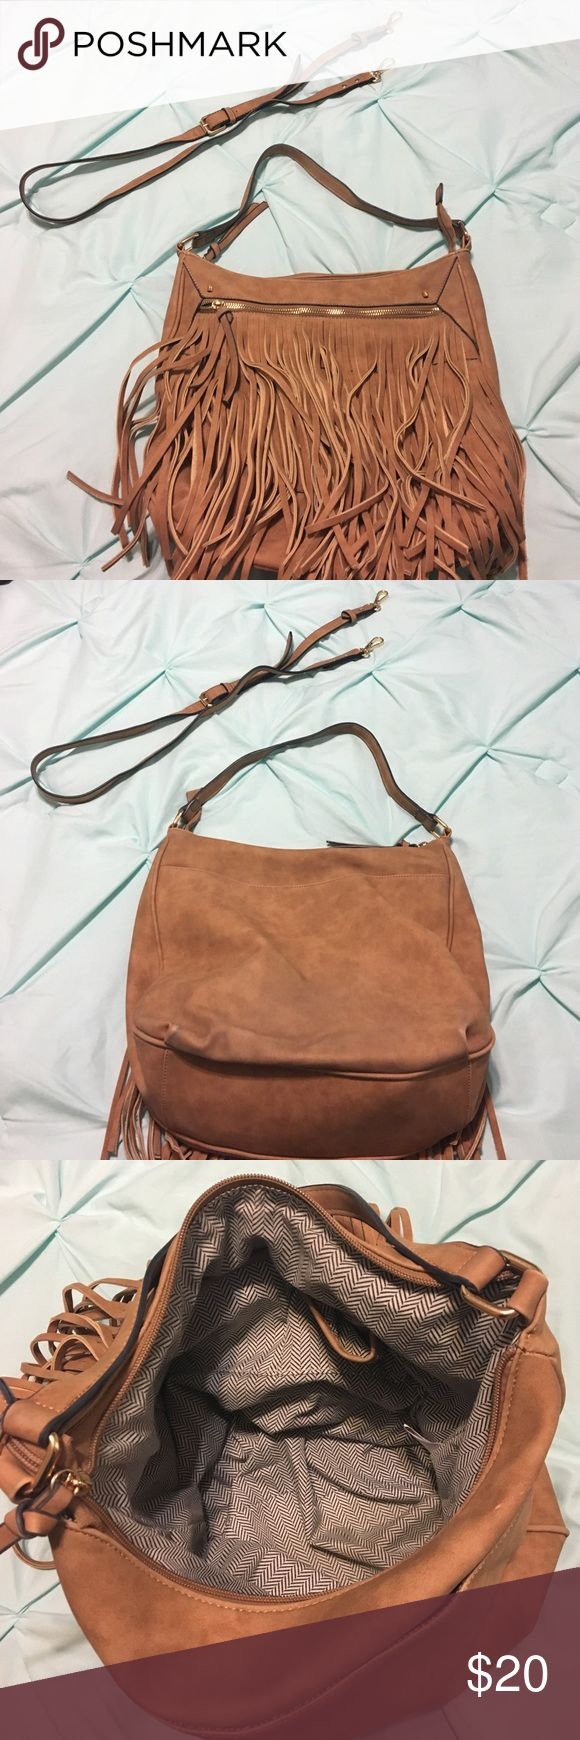 "Large camel color fringe hobo handbag. Large camel color fringe hobo handbag. Outside zipper pocket. One open pocket on the other side. Inner side pocket. Pockets to hold cell phone and keys. 13"" length. 4"" width. 12"" depth. Cross body strap comes with it, adjustable as well. Has no brand name, I looked everywhere on this thing! Negotiable. Bags Hobos"